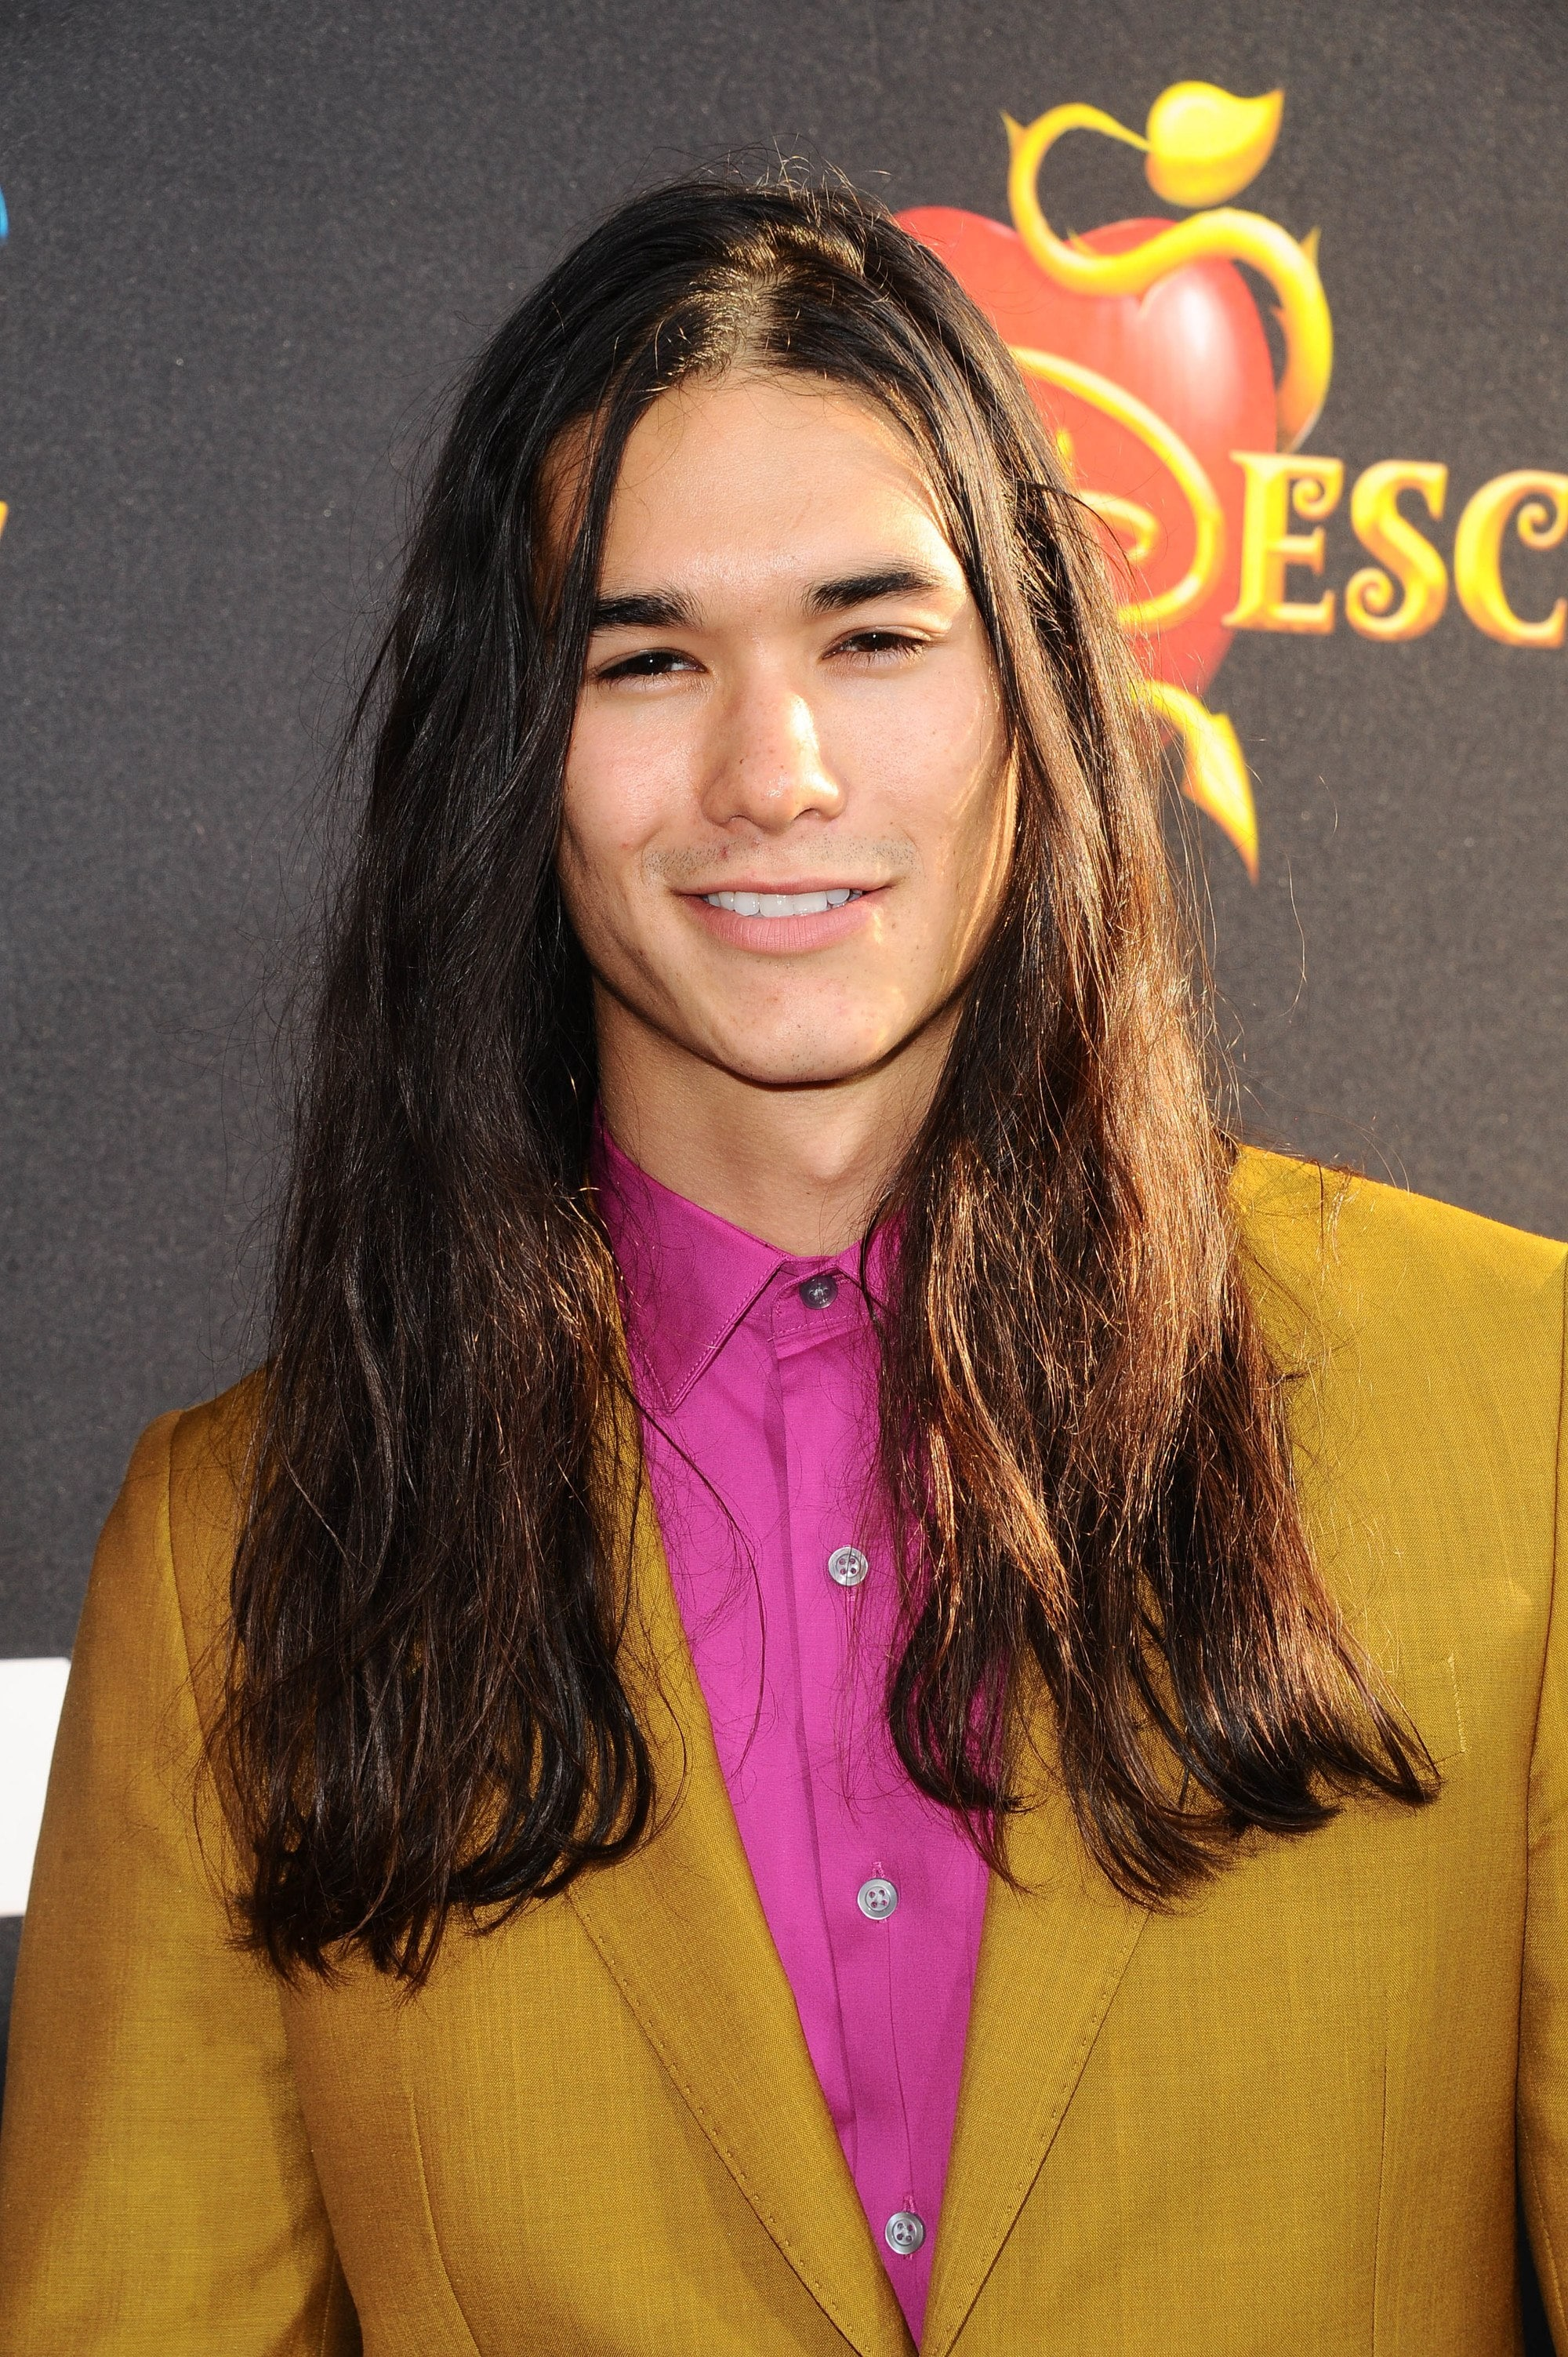 twilight actor booboo stewart on the red carpet with his long wavy dark hair wearing a pink shirt and mustard blazer